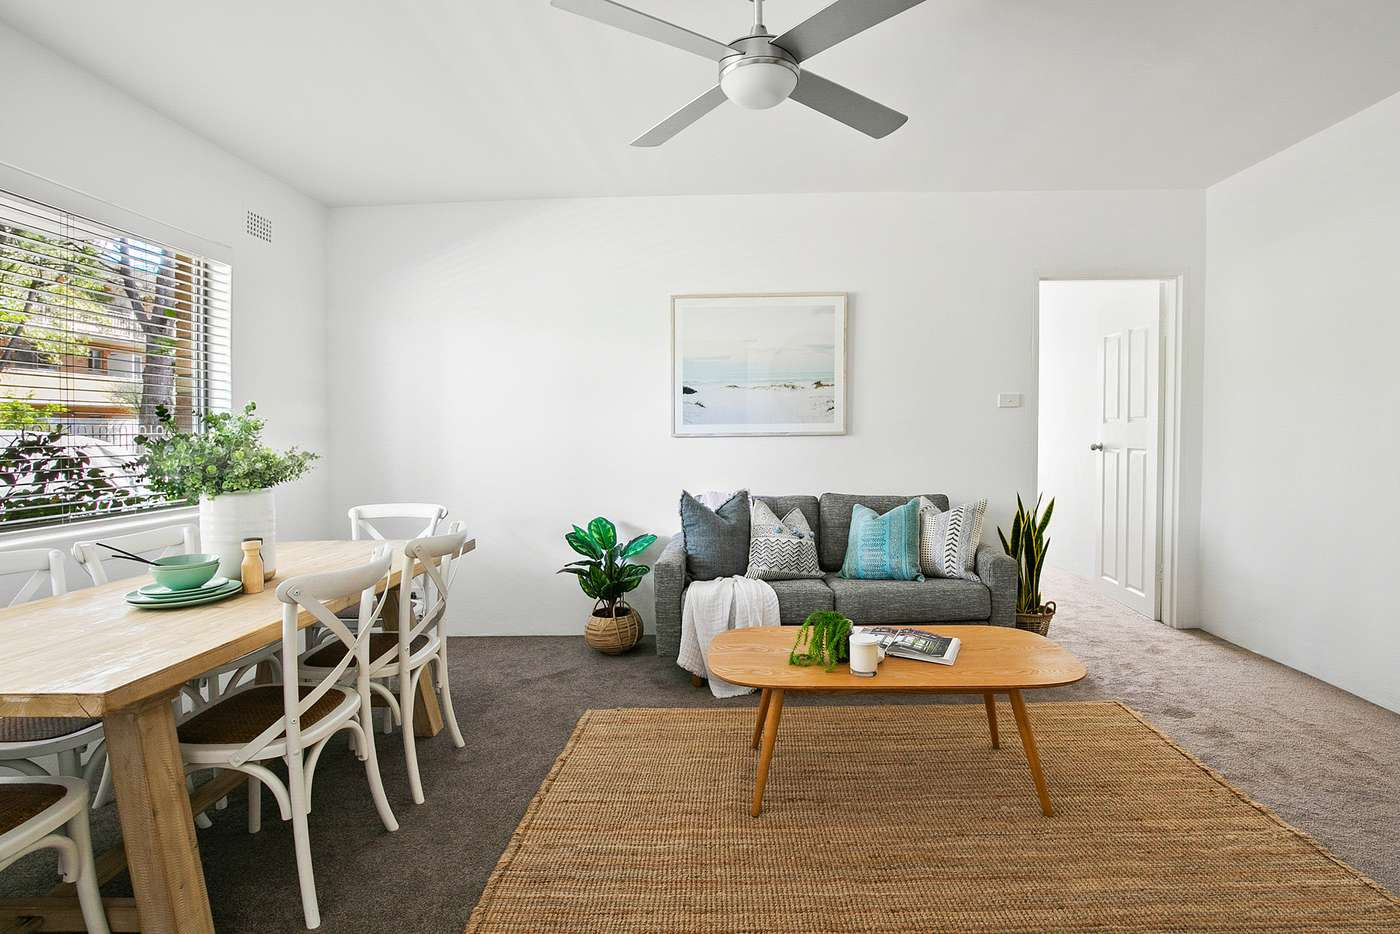 Main view of Homely apartment listing, 2/5 Fairway Close, Manly Vale NSW 2093